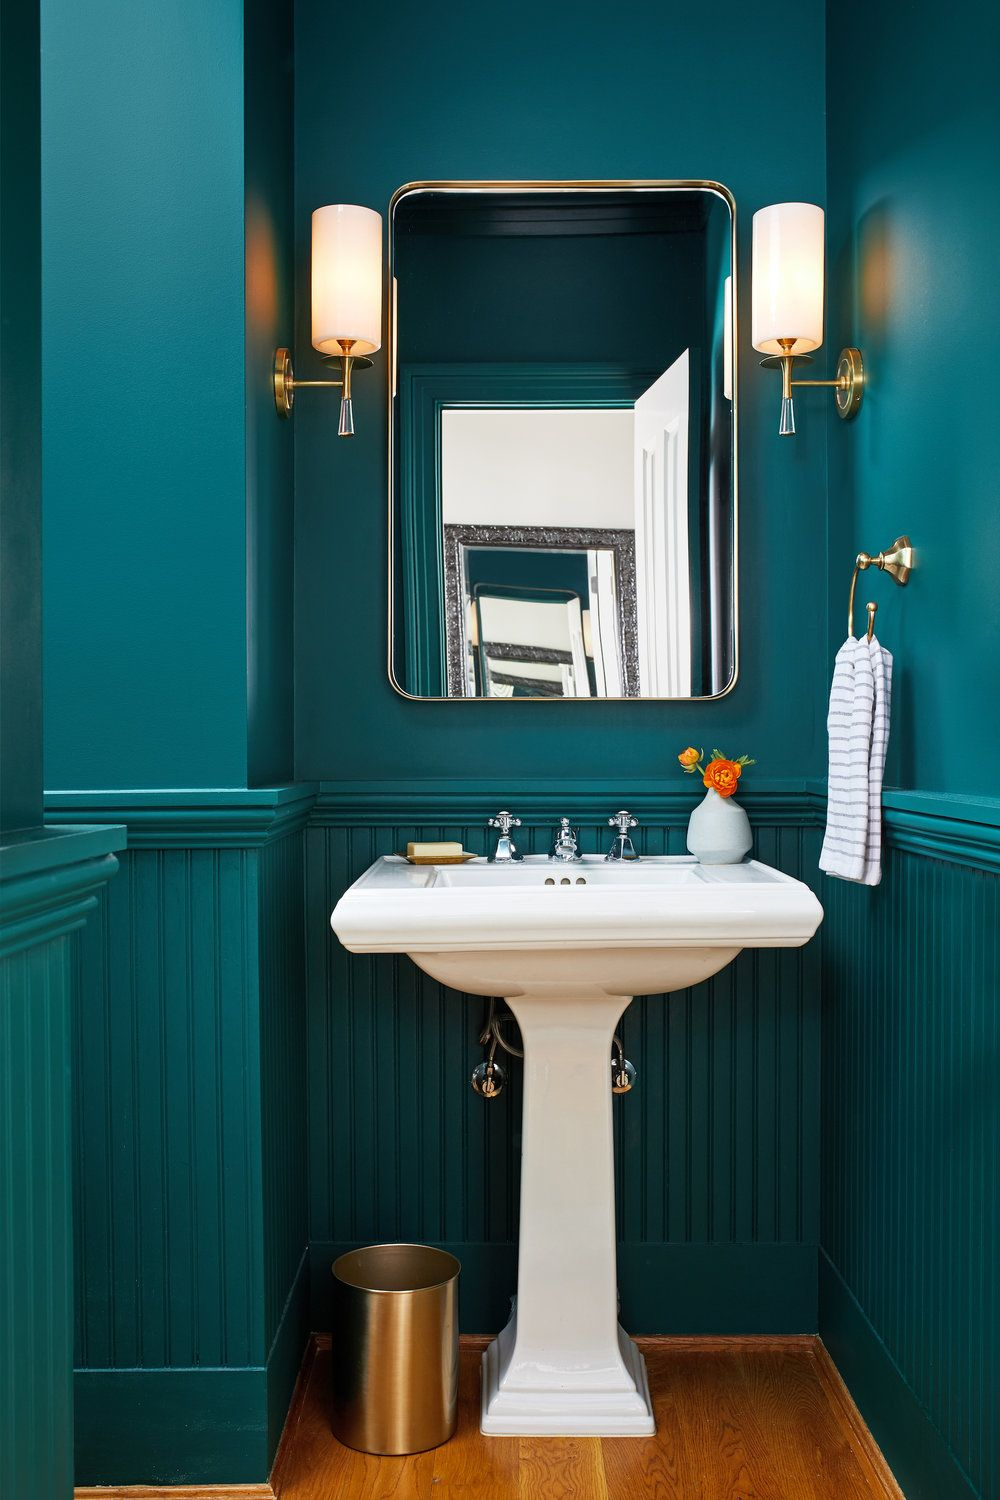 The 10 Best Teal Paint Colors And How To Use Them